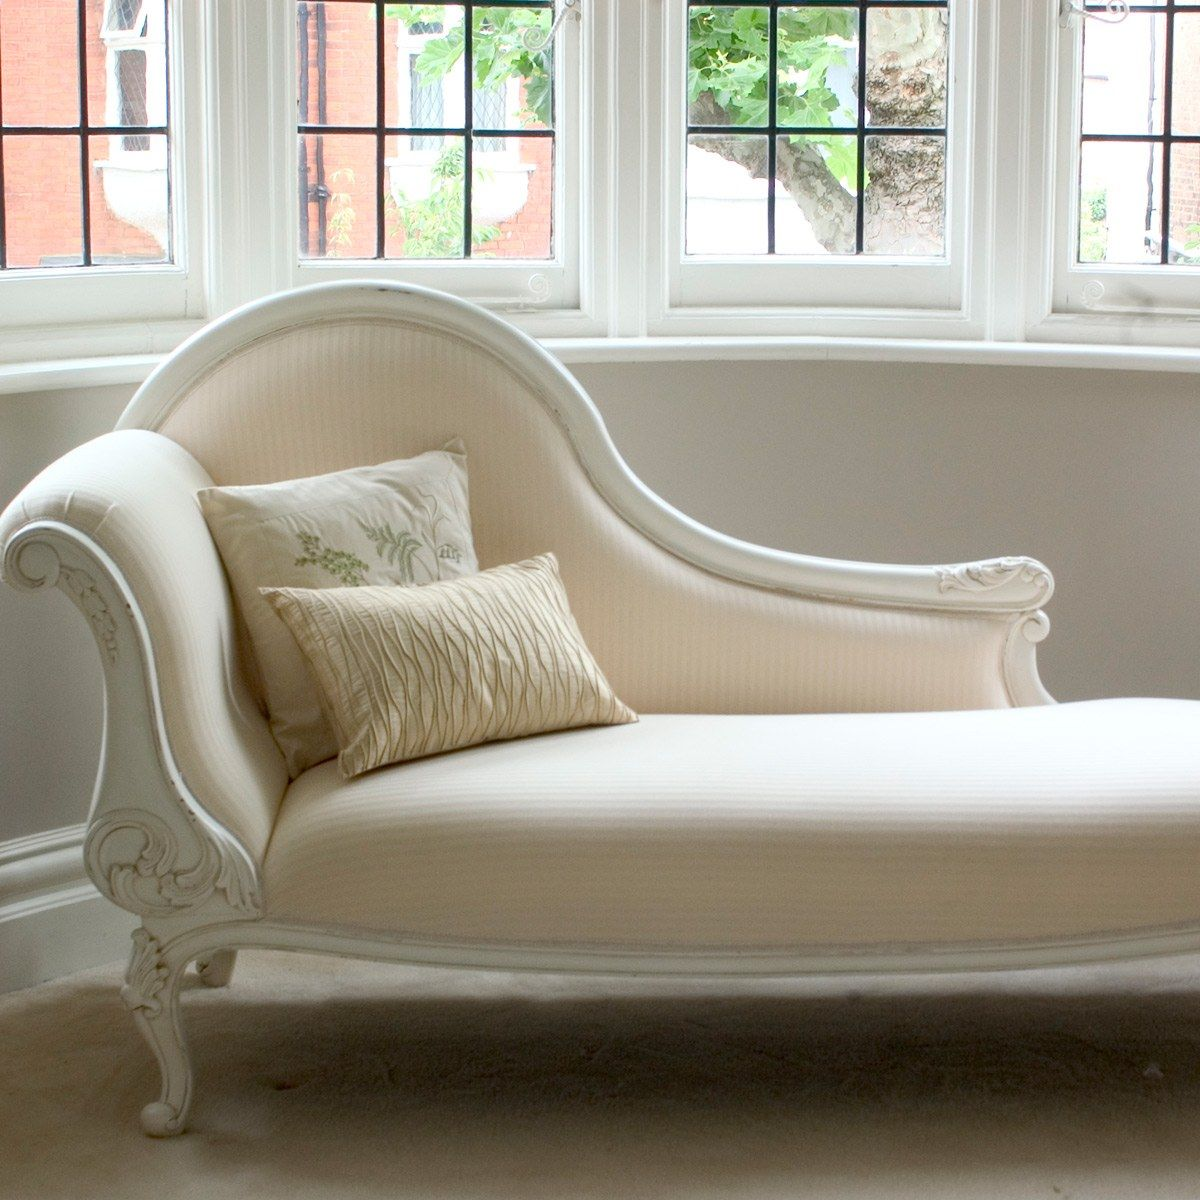 Best Classical White Chaise Longue Modern Chaise Lounge 400 x 300